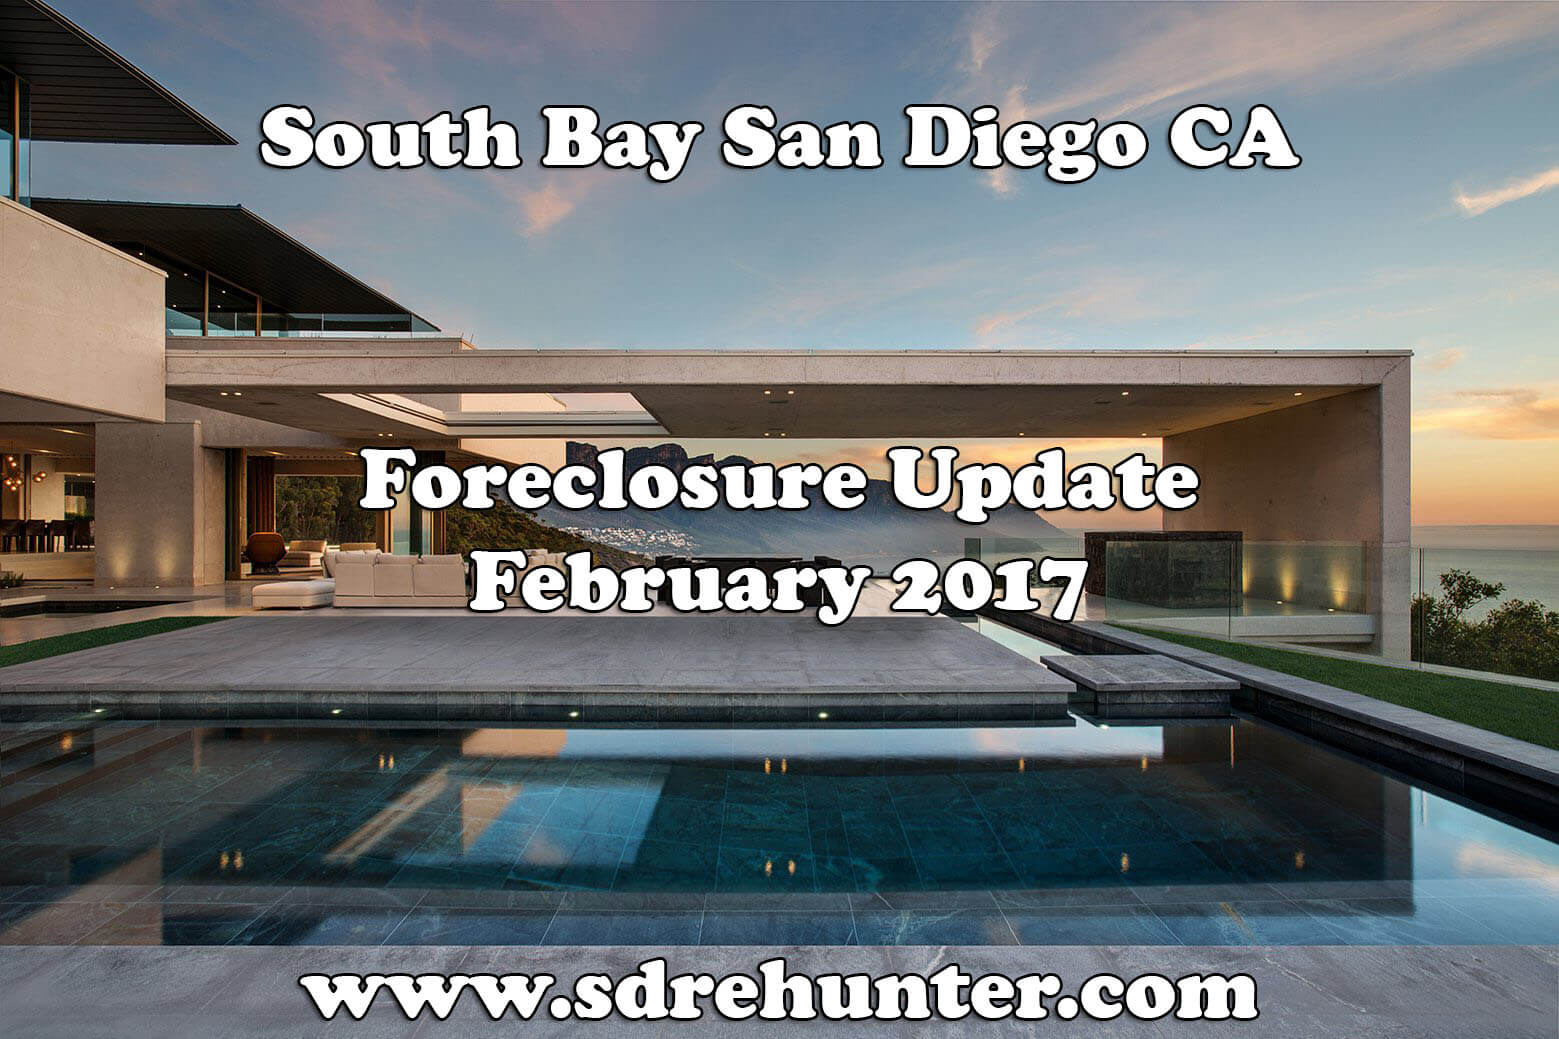 South Bay San Diego CA Foreclosure Update - February 2017